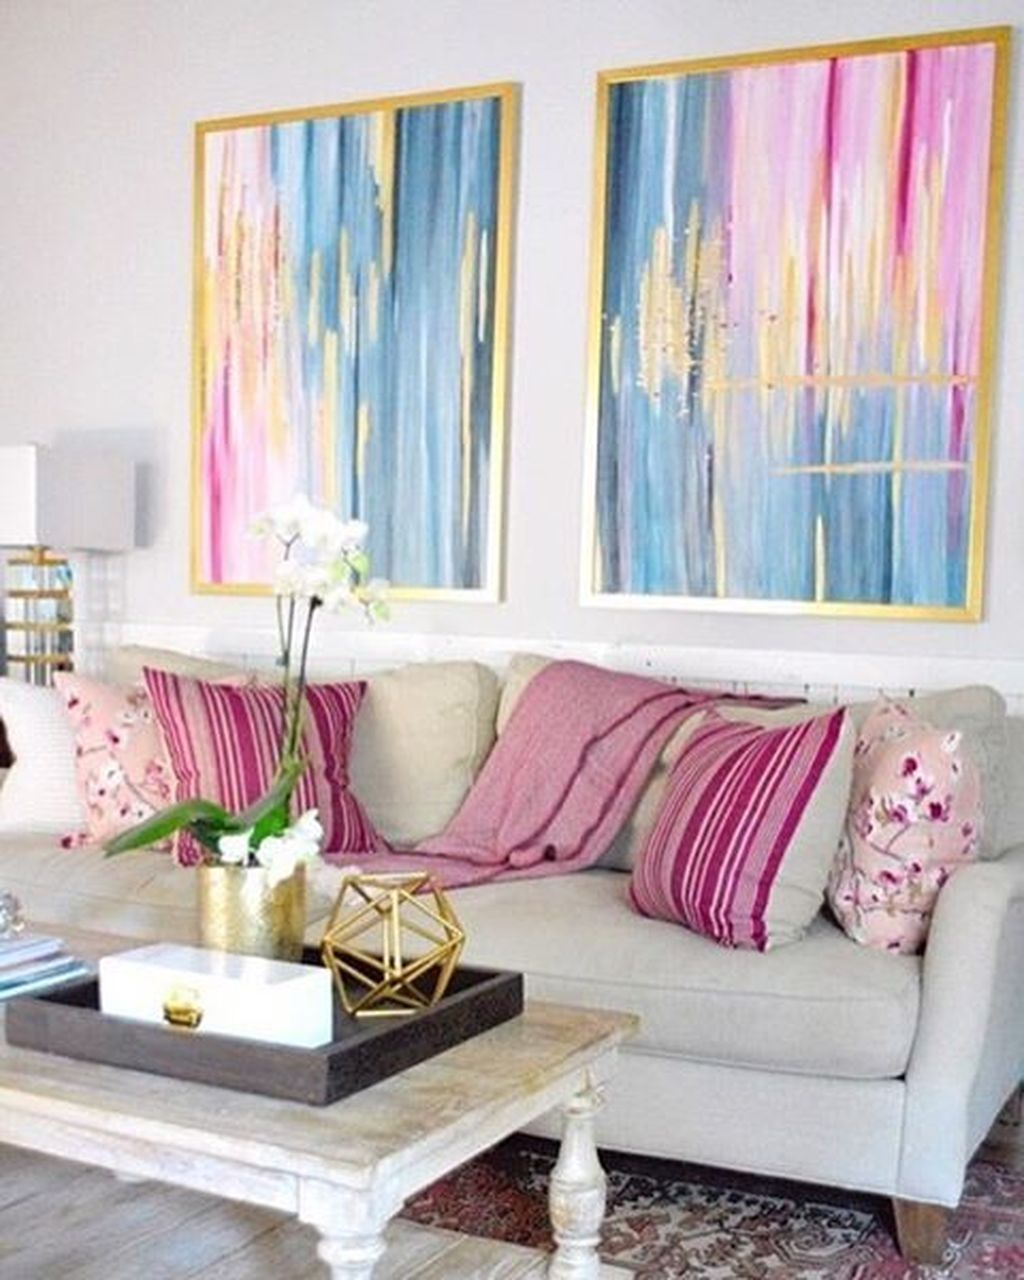 Pink Living Room Design: 30 Beautiful Pink Living Room Decor Ideas